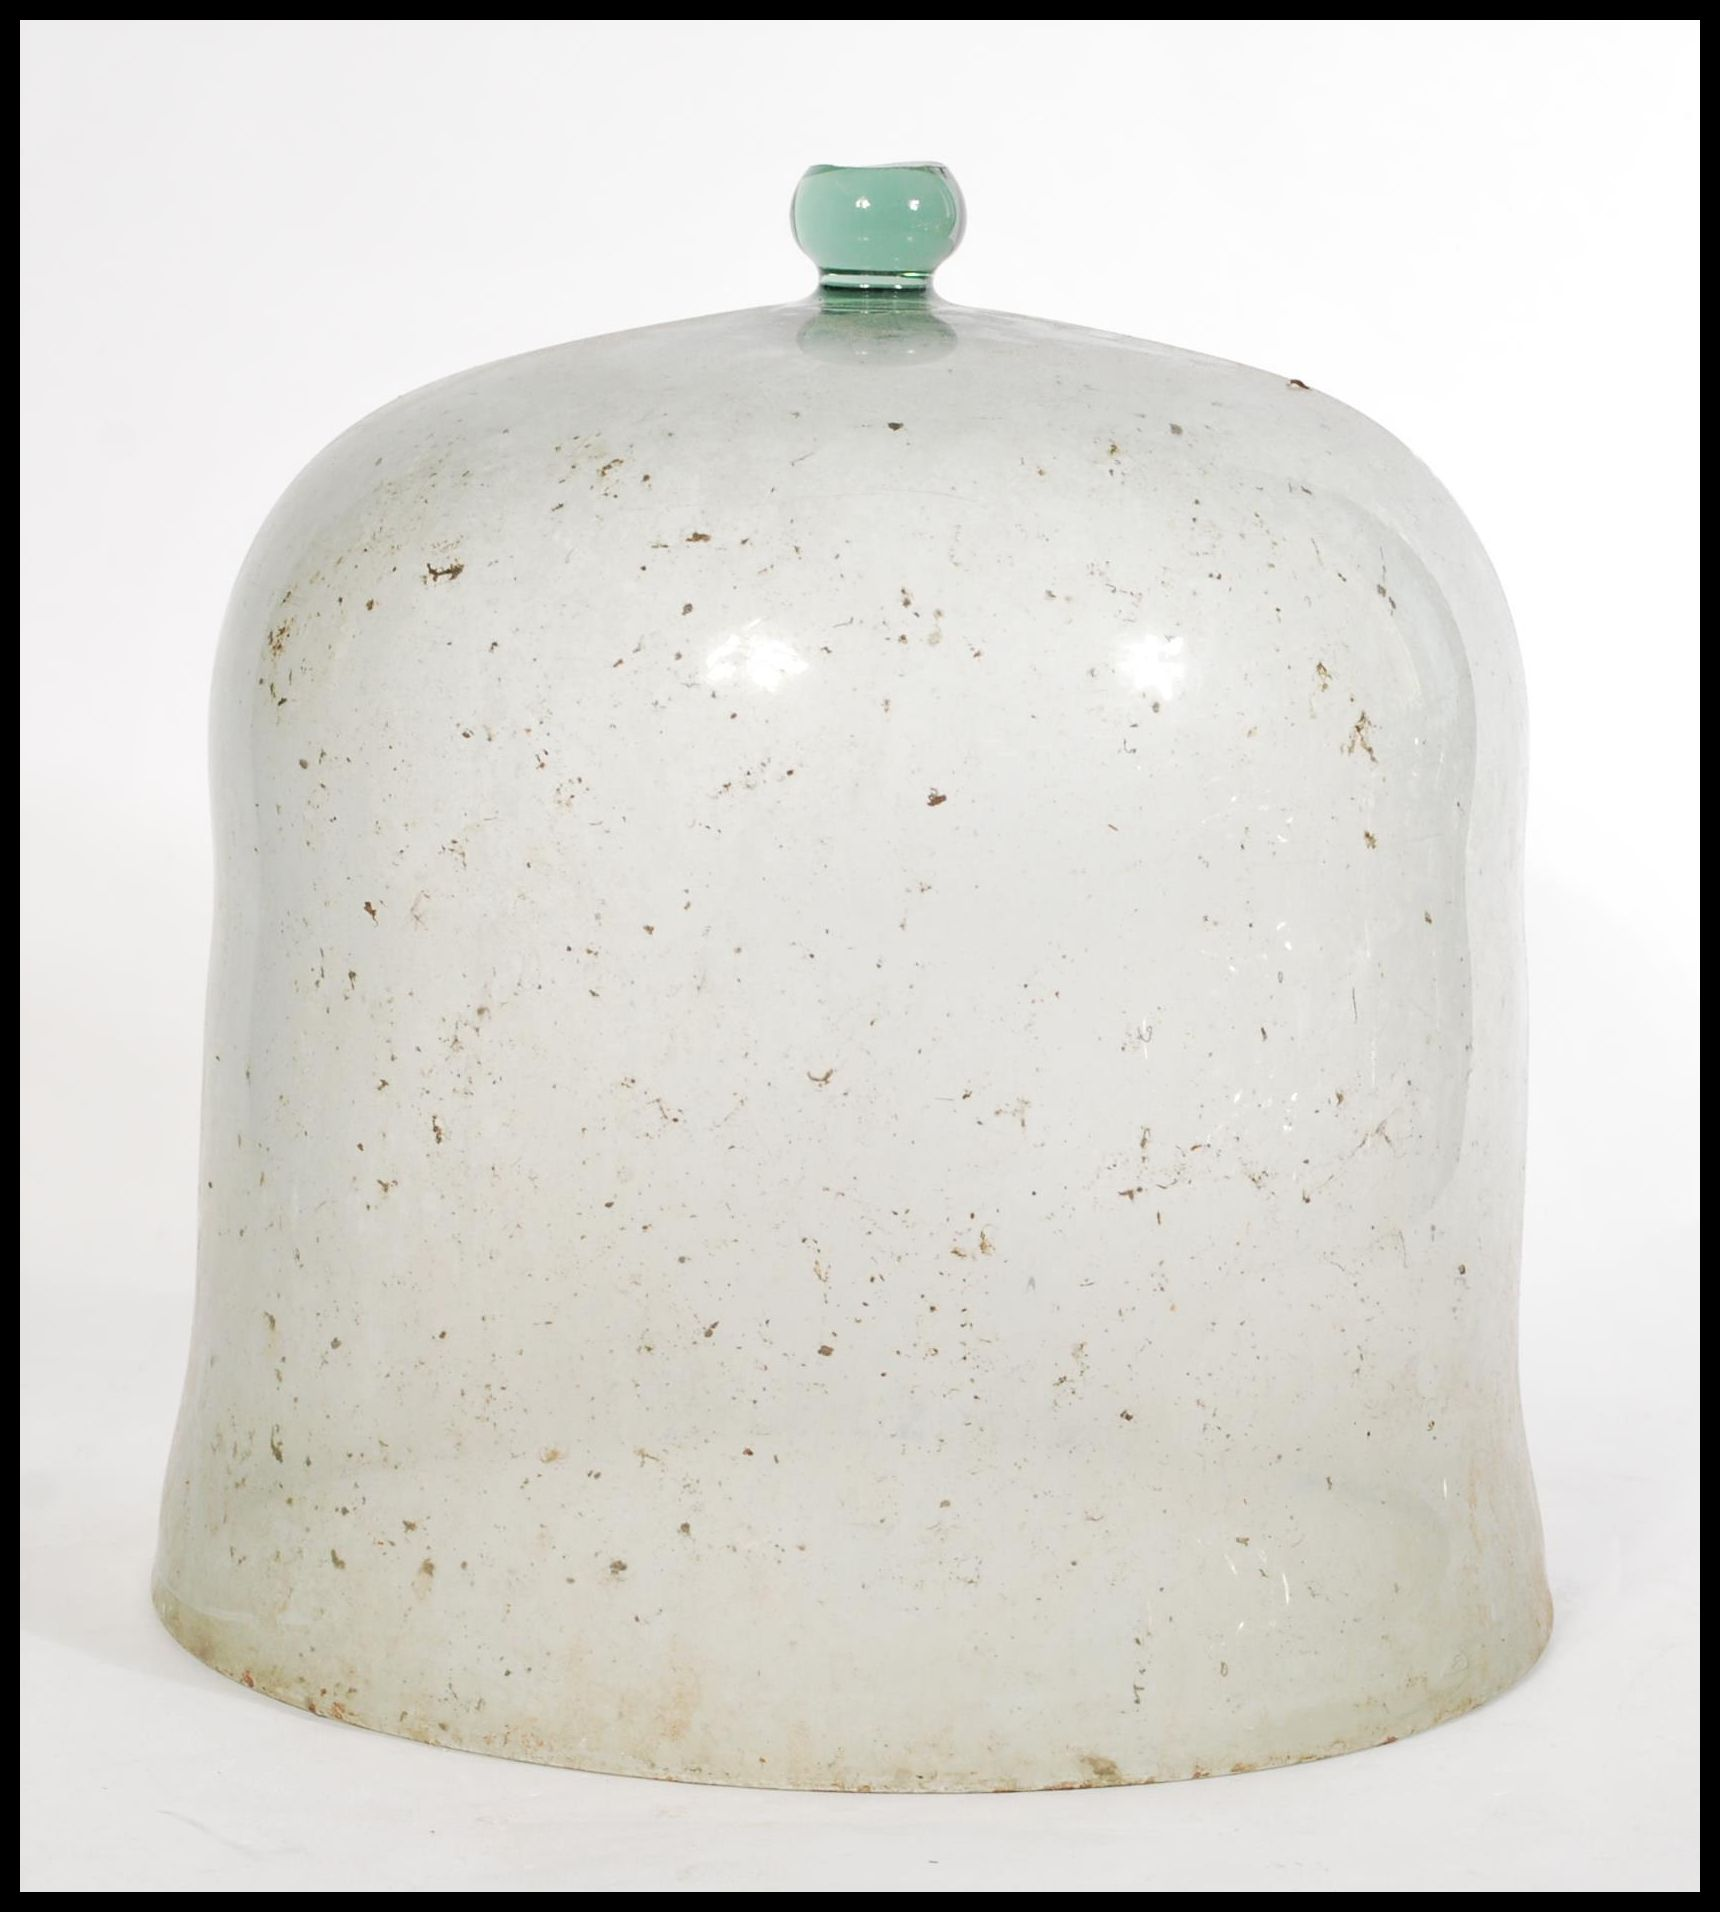 Lot 16 - A late 19th Century Victorian glass bell cloche / glass dome with a ballfinial handle to the top.